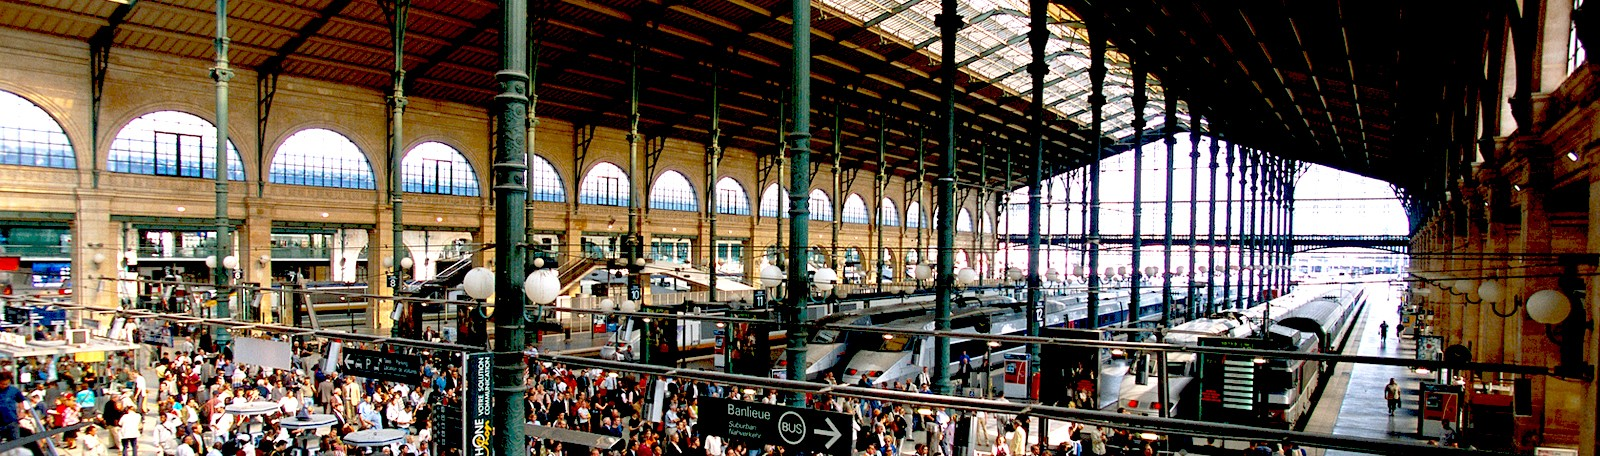 Gare RER A Saint-Germain-en-Laye - Stations, public transport - Saint Germain en Laye